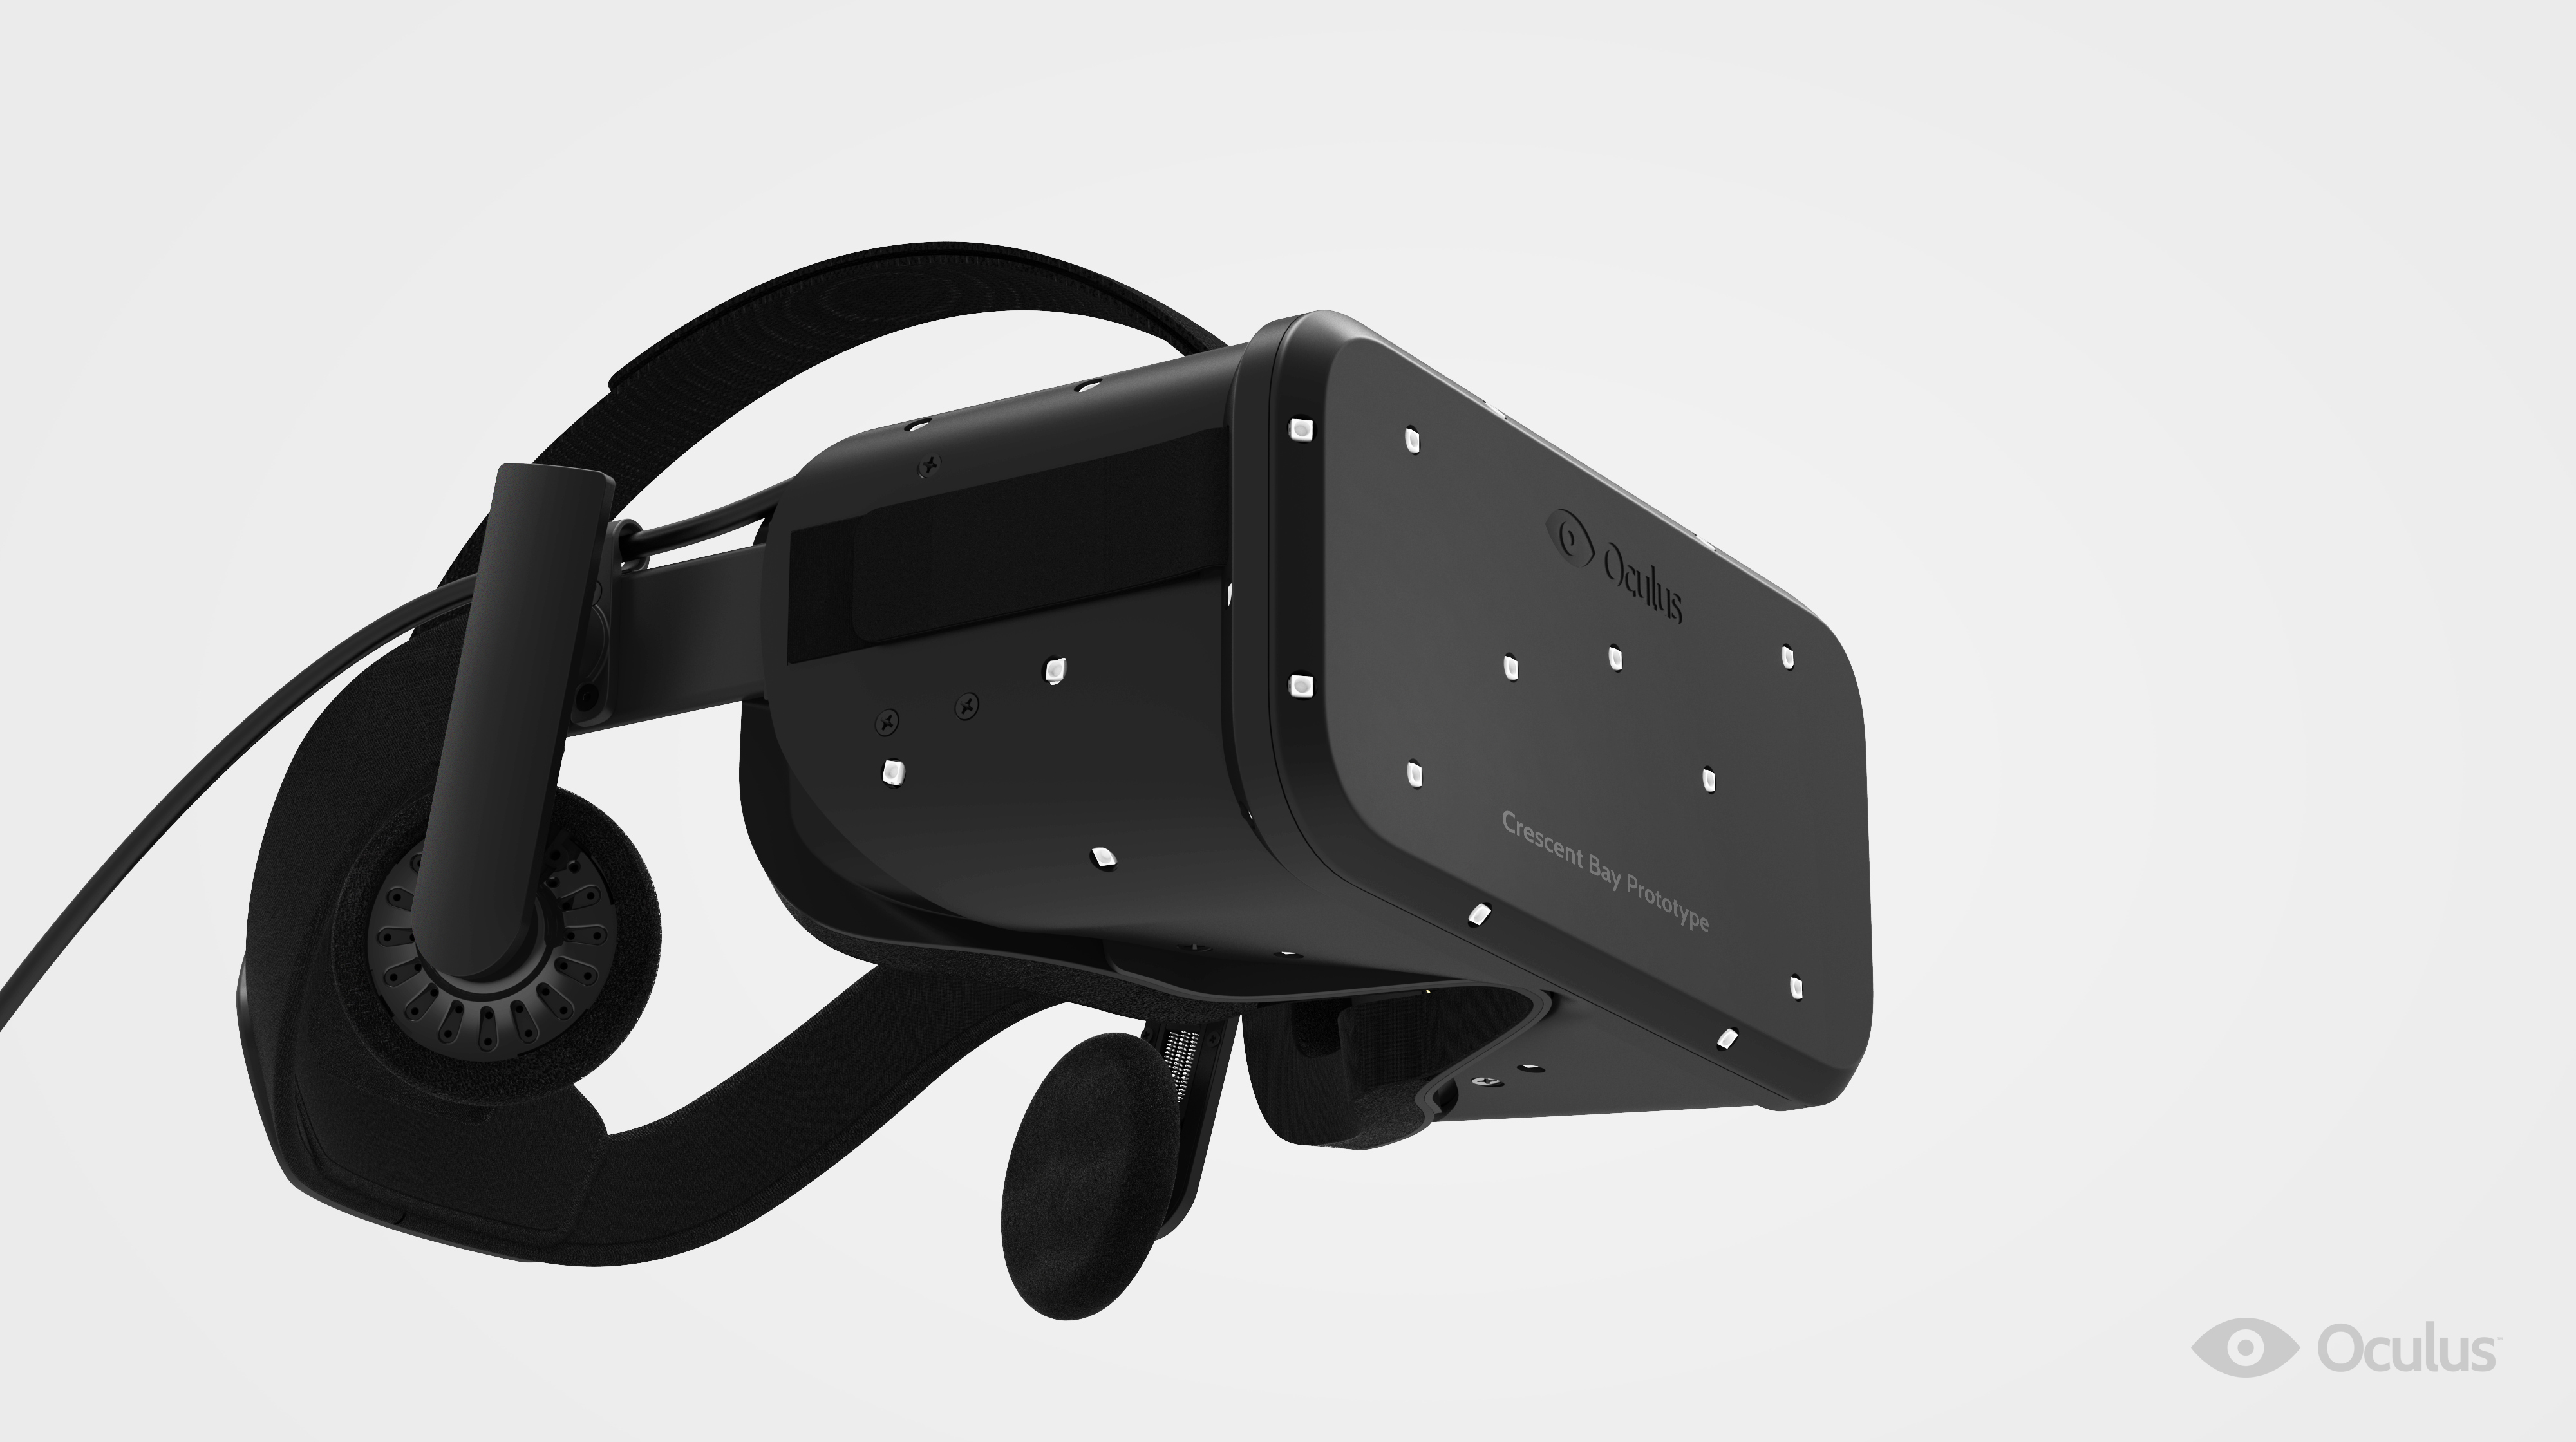 4a17a2afc256 The Oculus Crescent Bay is a two-screen VR headset